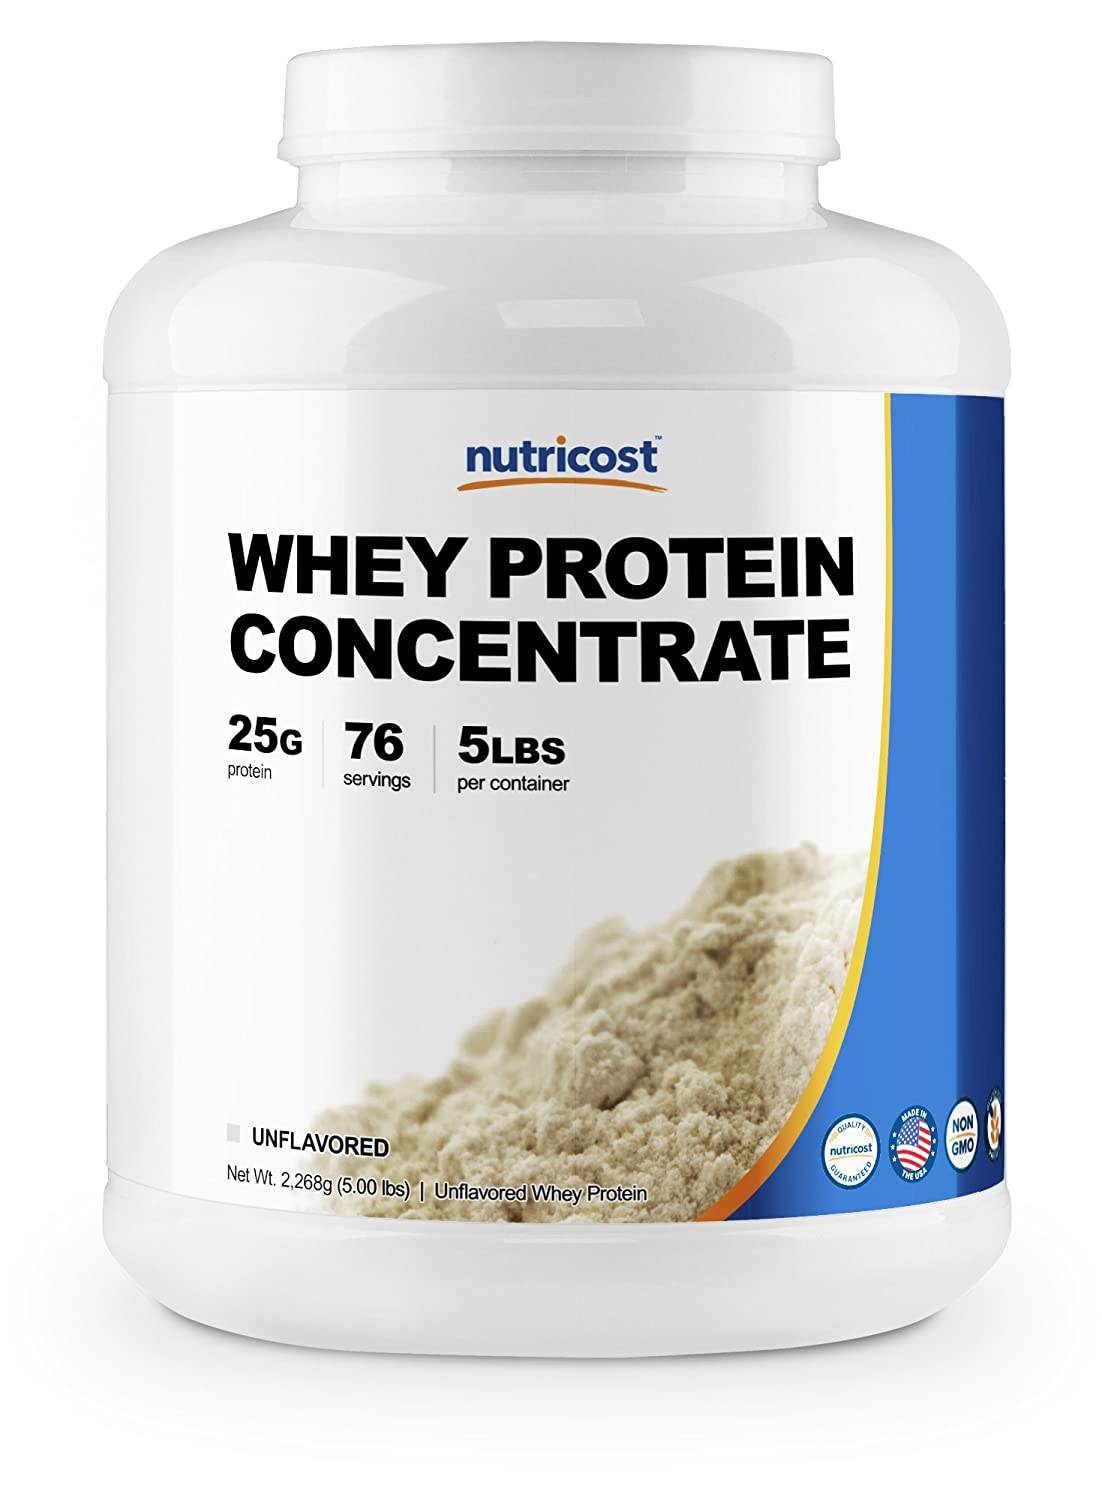 Nutricost Whey Protein Concentrate Unflavored 5LBS